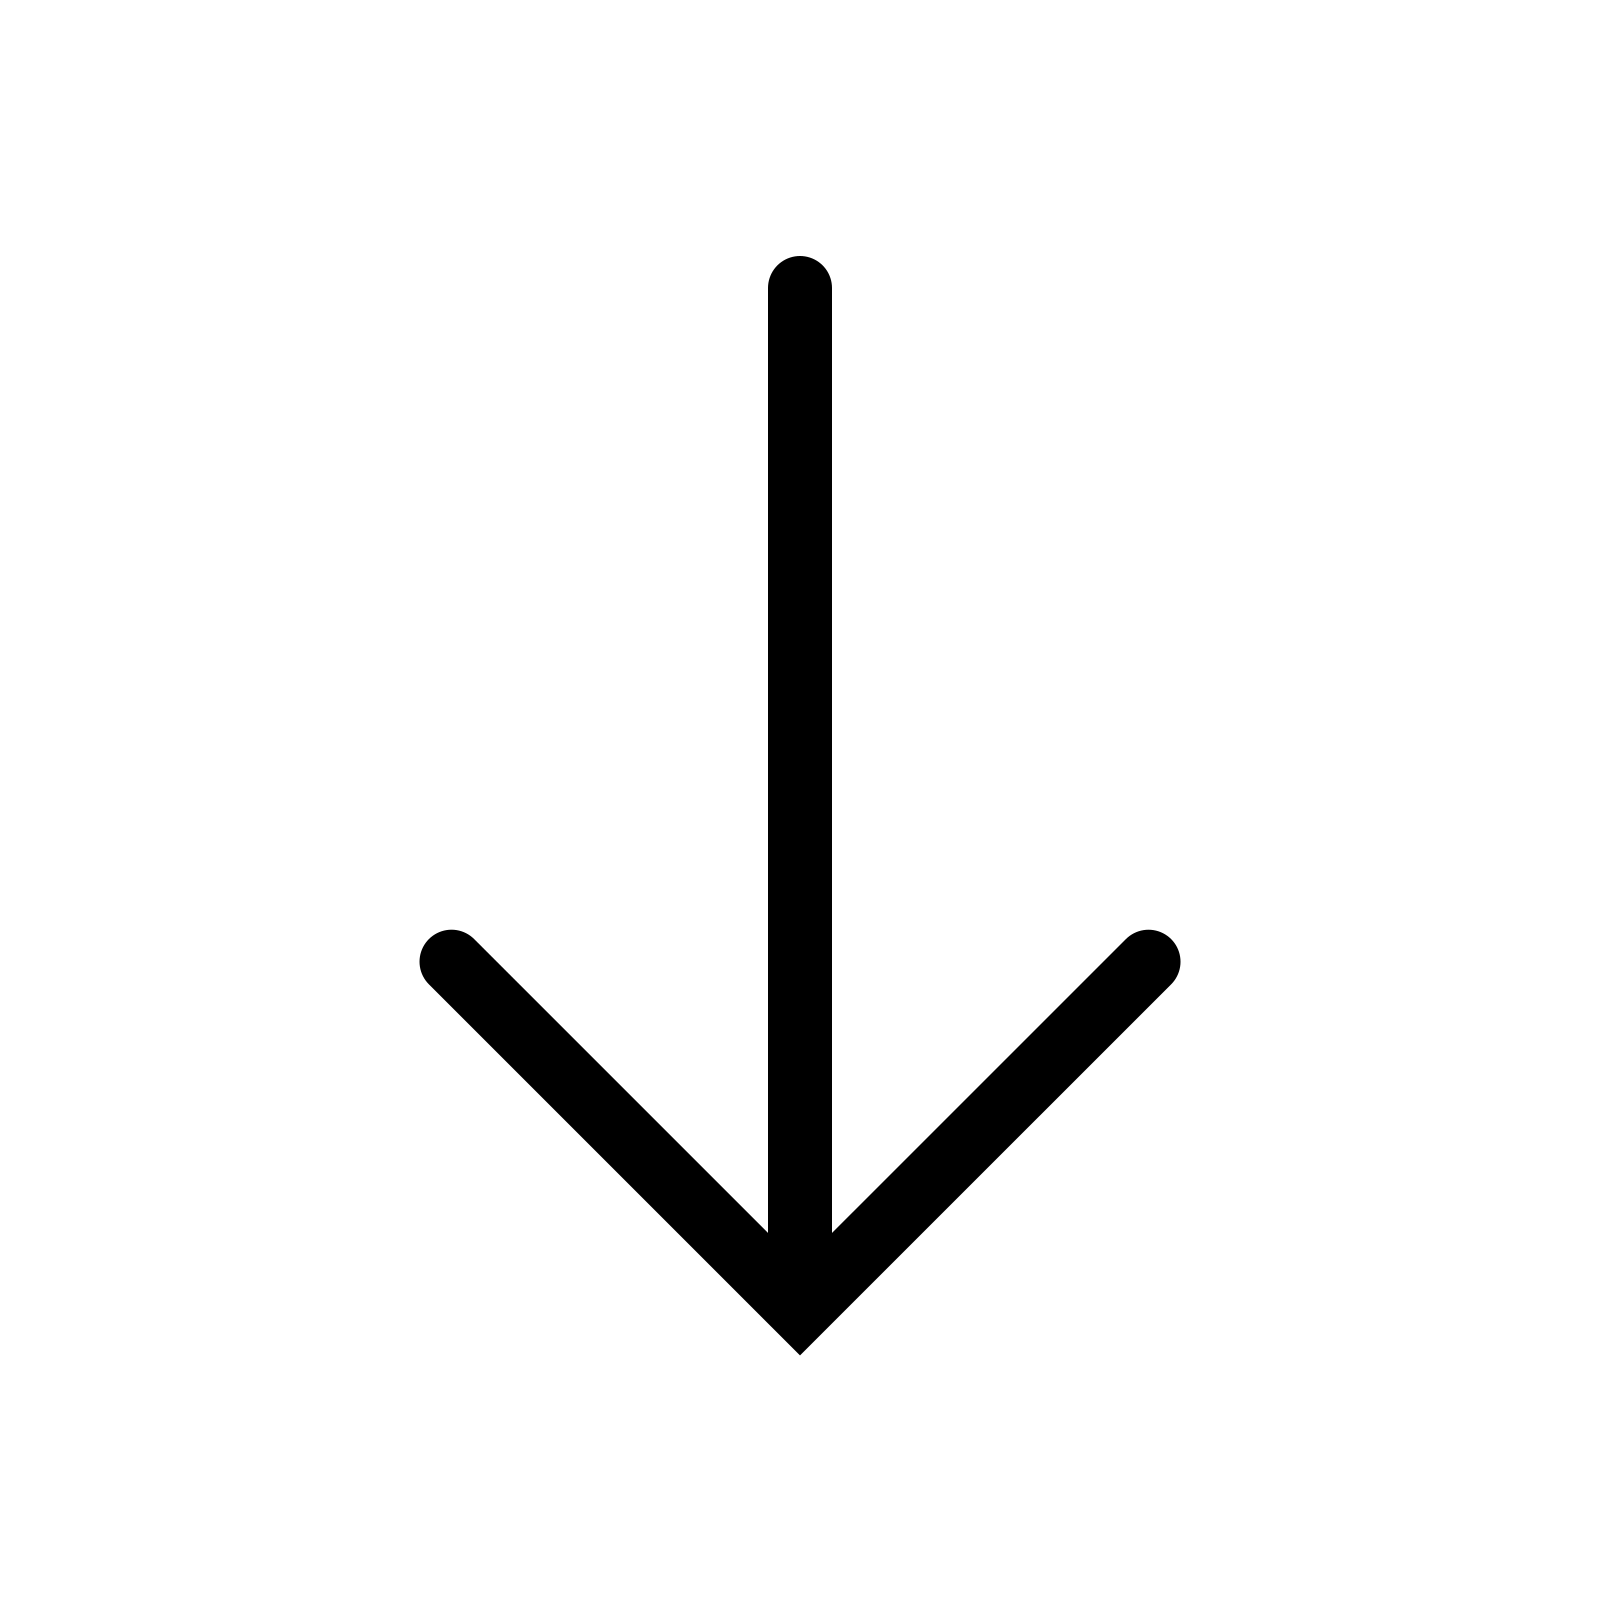 Arrow PNG images, Free Arrow icons Download - Free ...